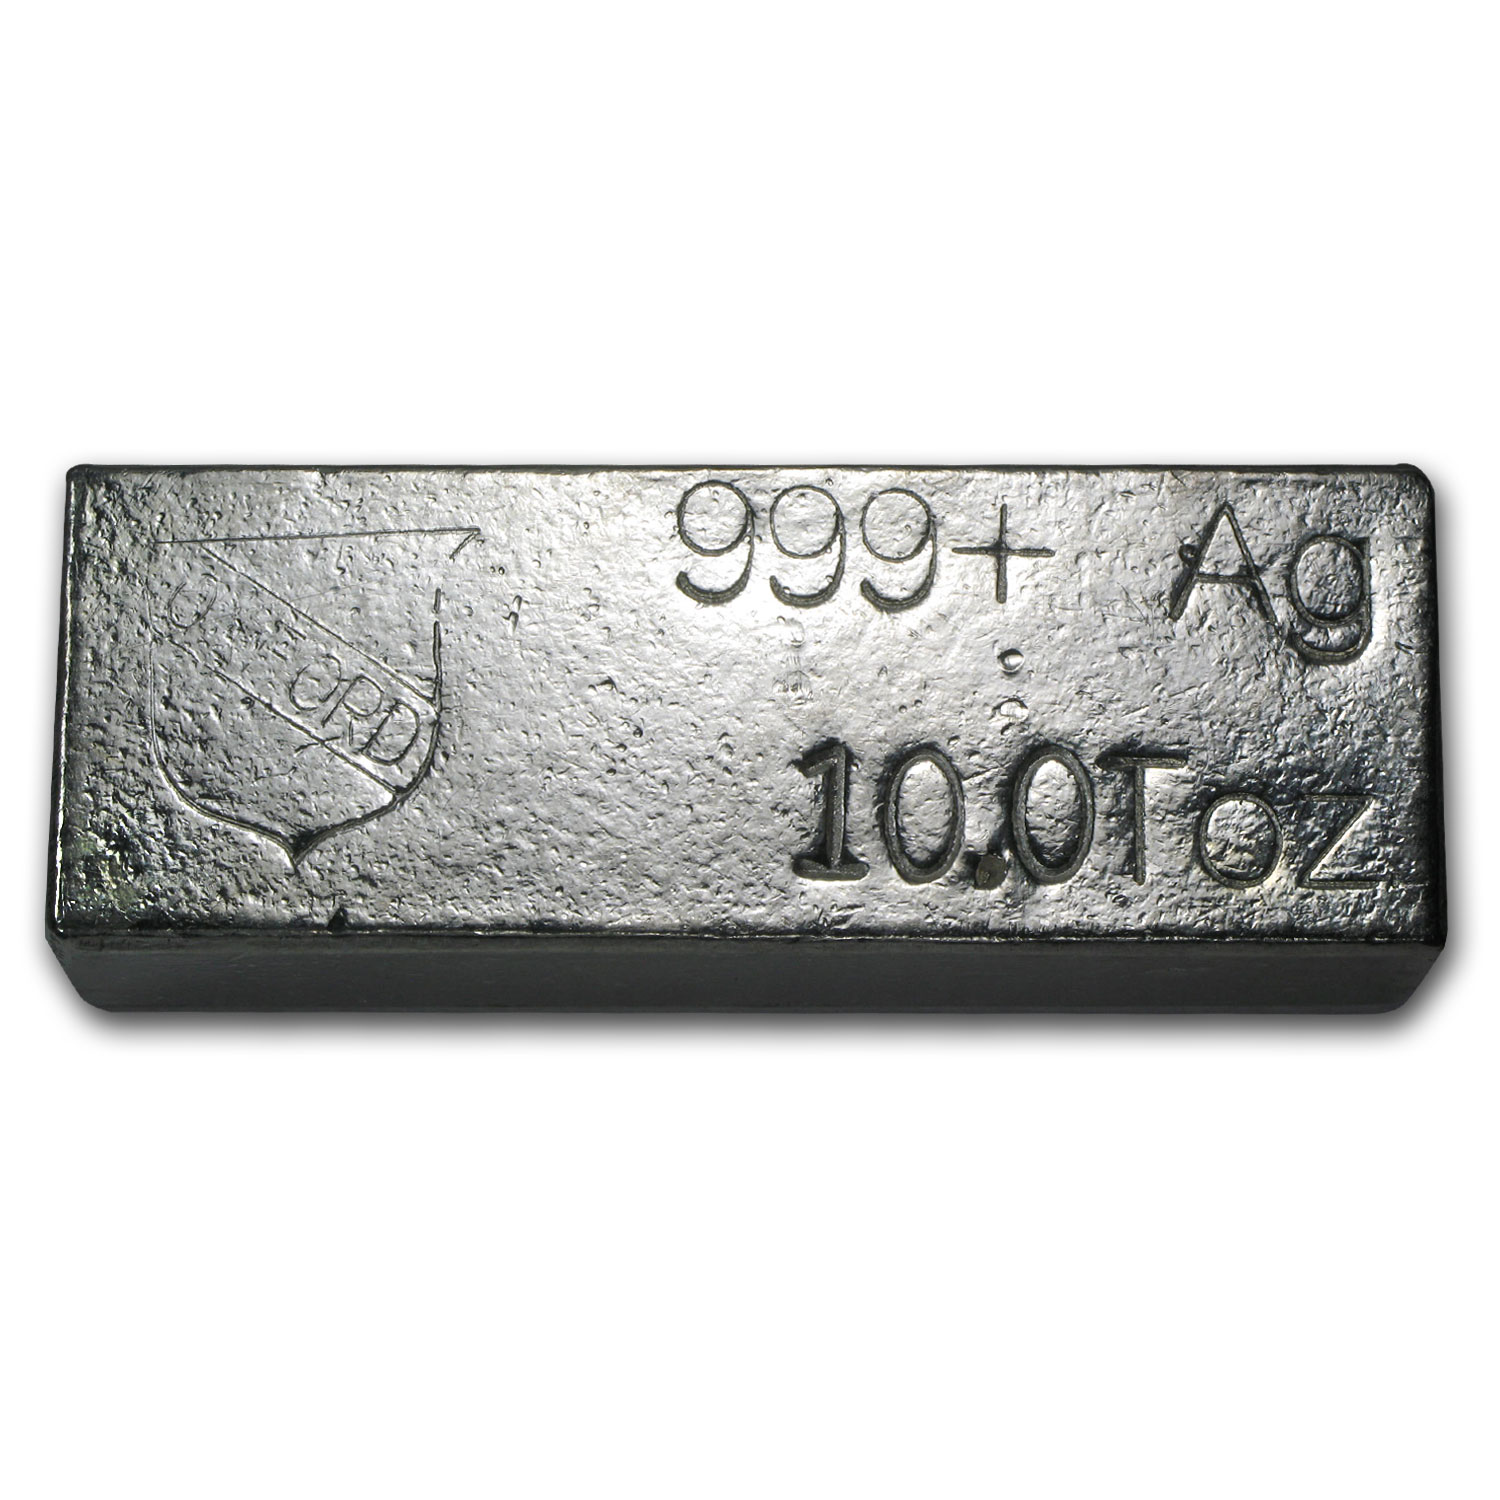 10 oz Silver Bars - Oxford Mint